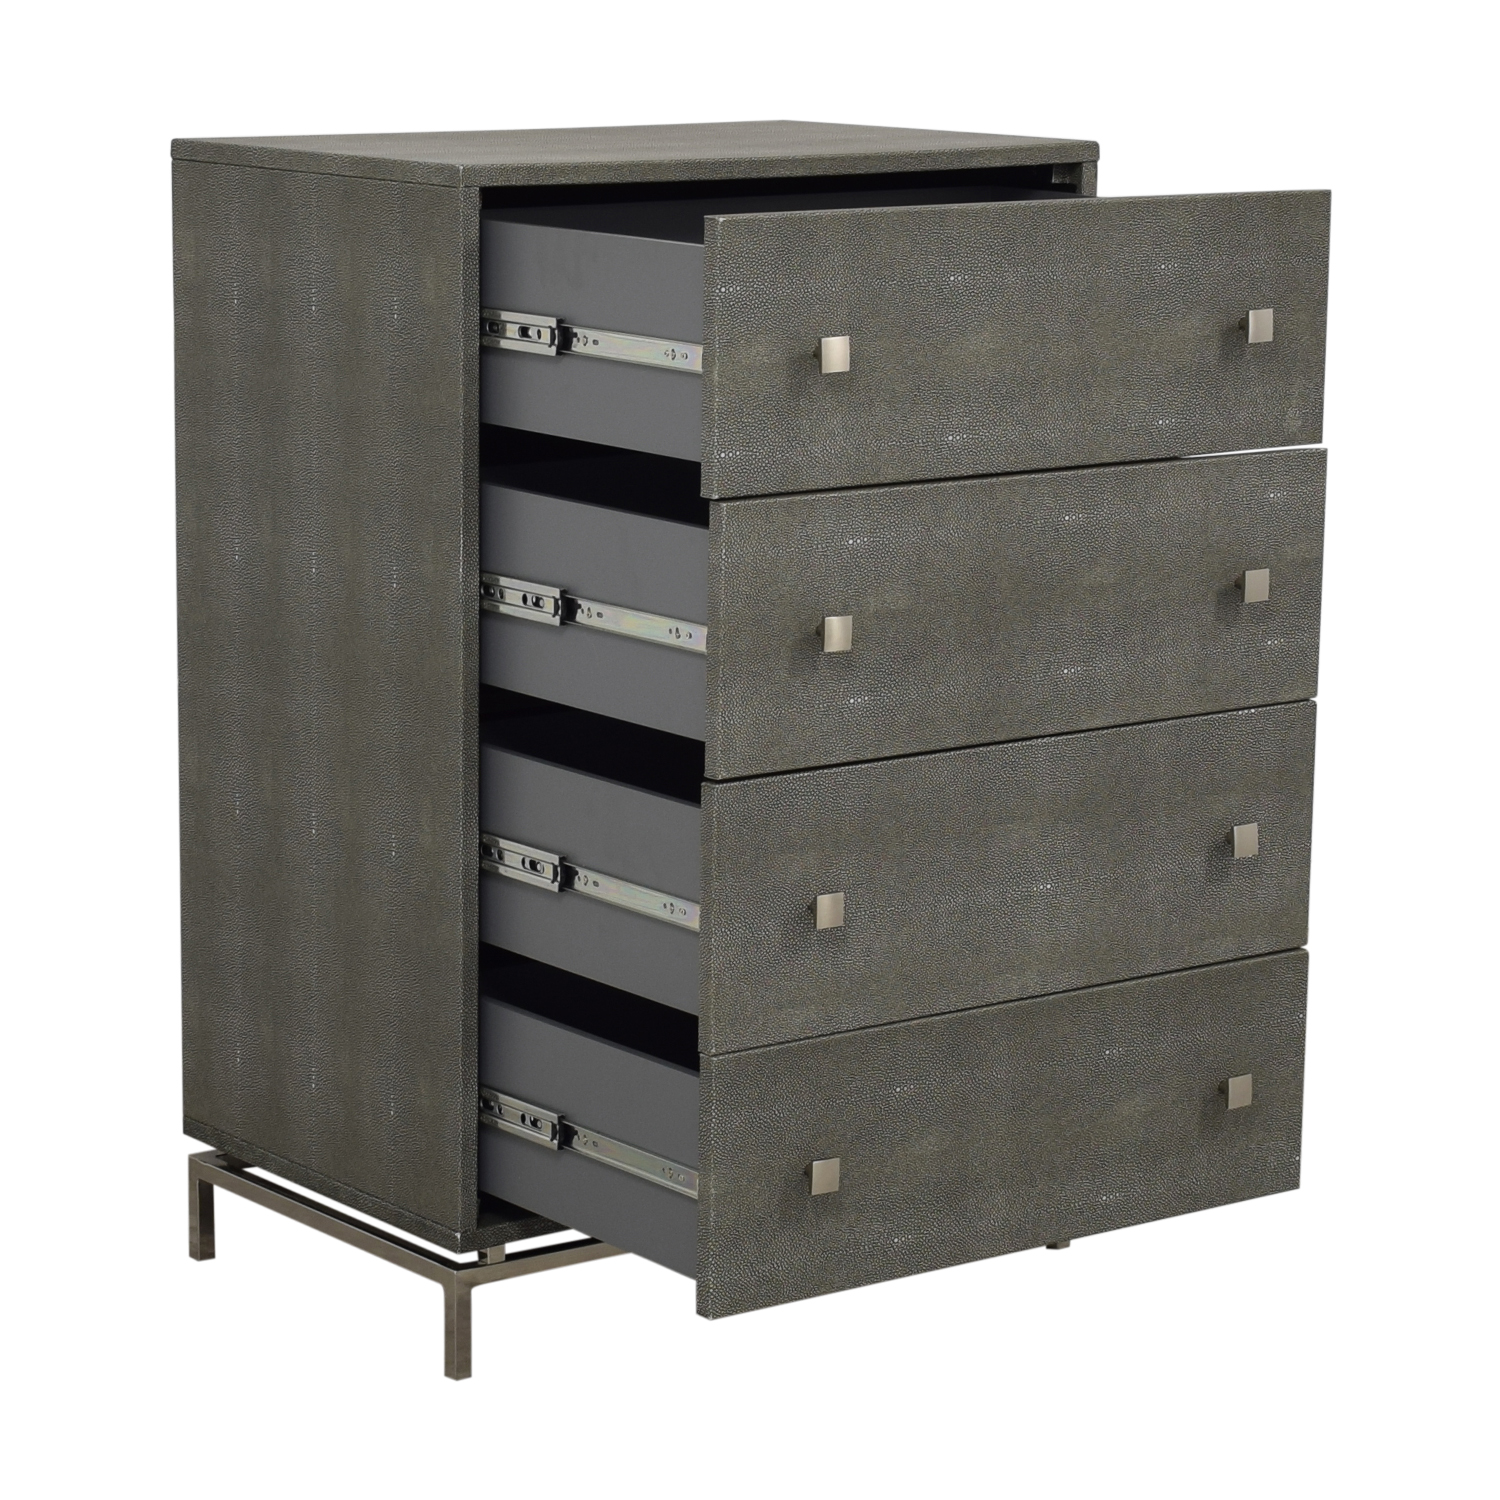 CB2 CB2 Shagreen Embossed Tall Chest coupon